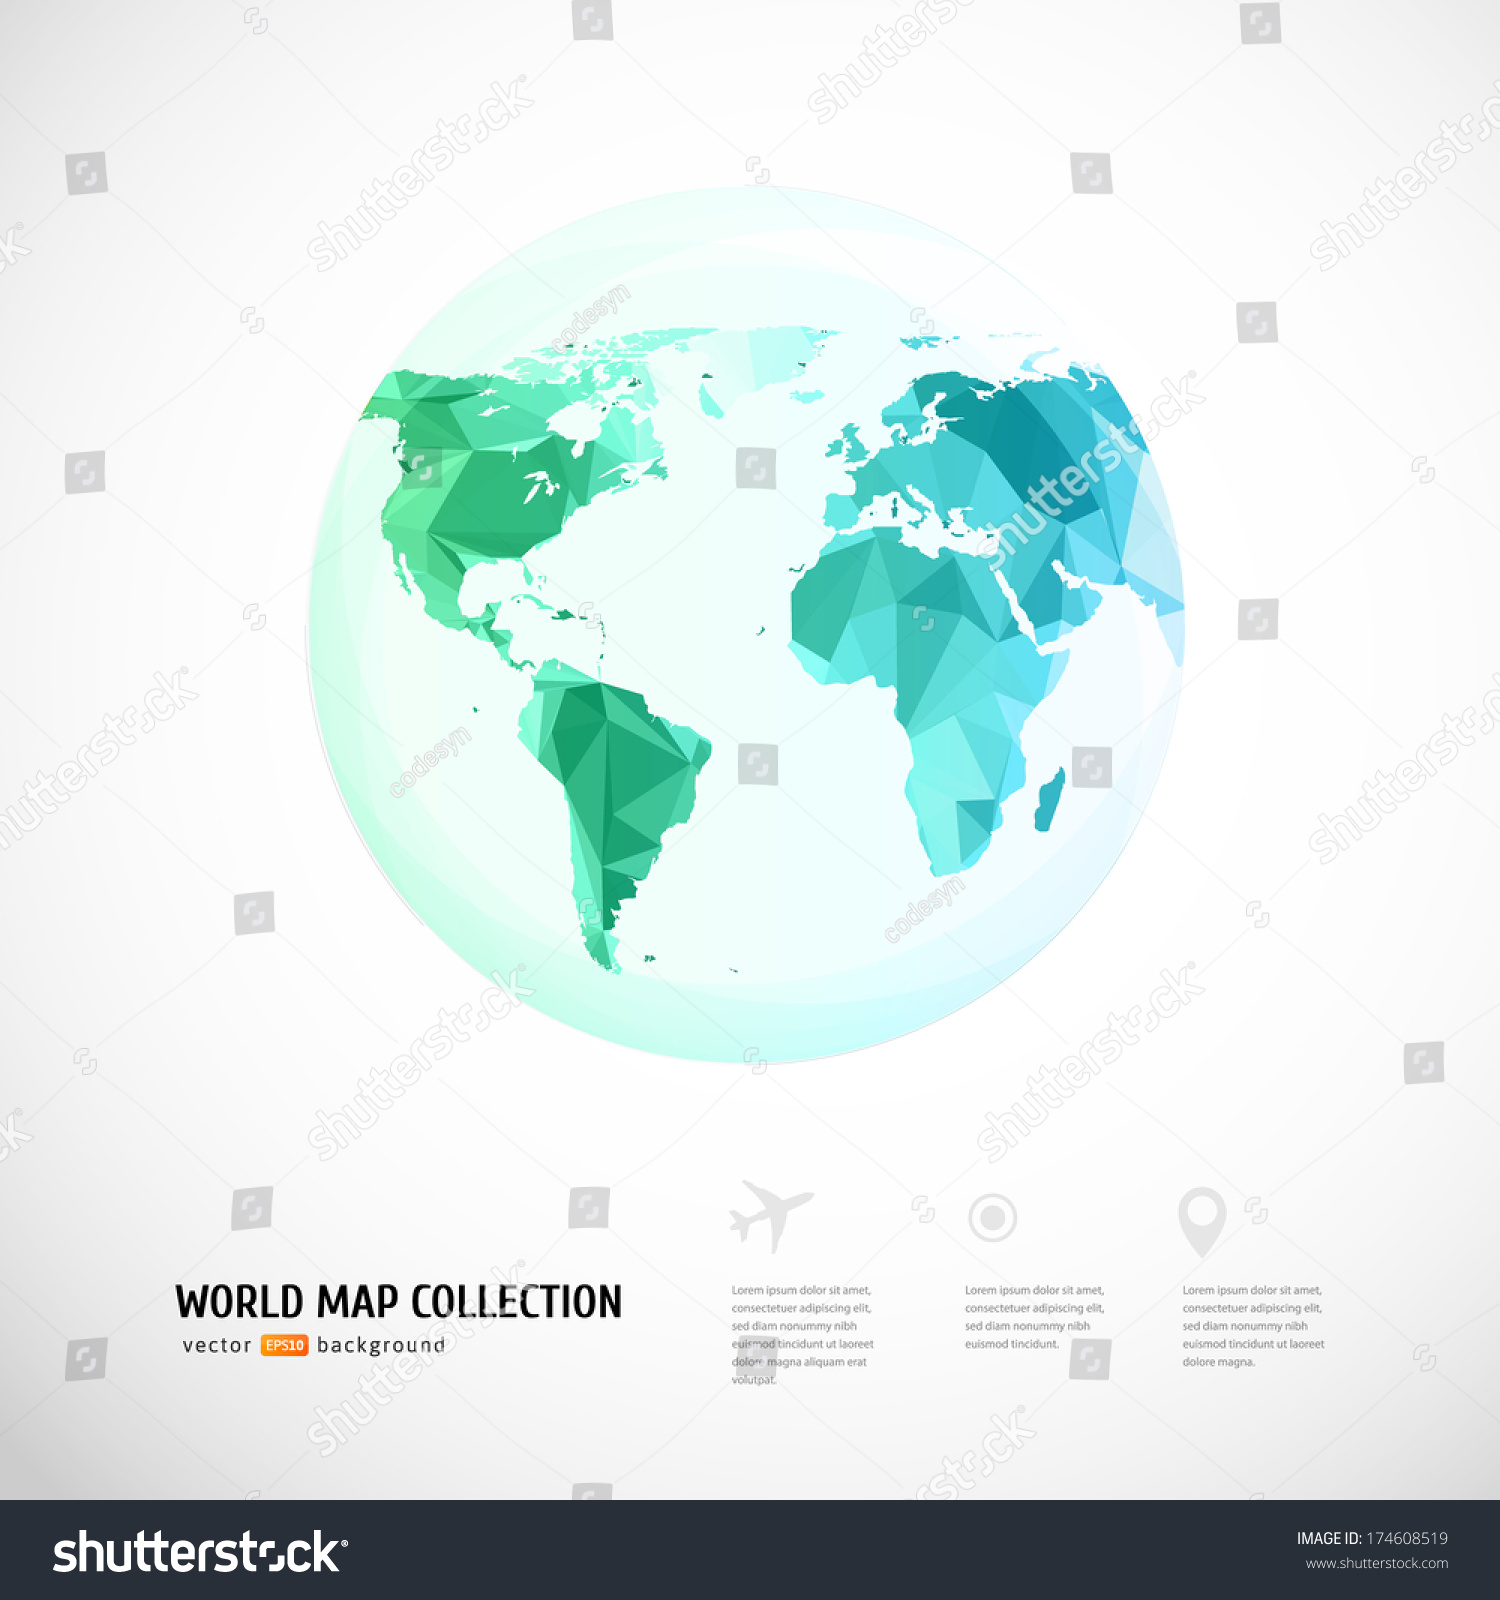 Vector world map triangle set vectores en stock 174608519 shutterstock vector world map triangle set gumiabroncs Image collections